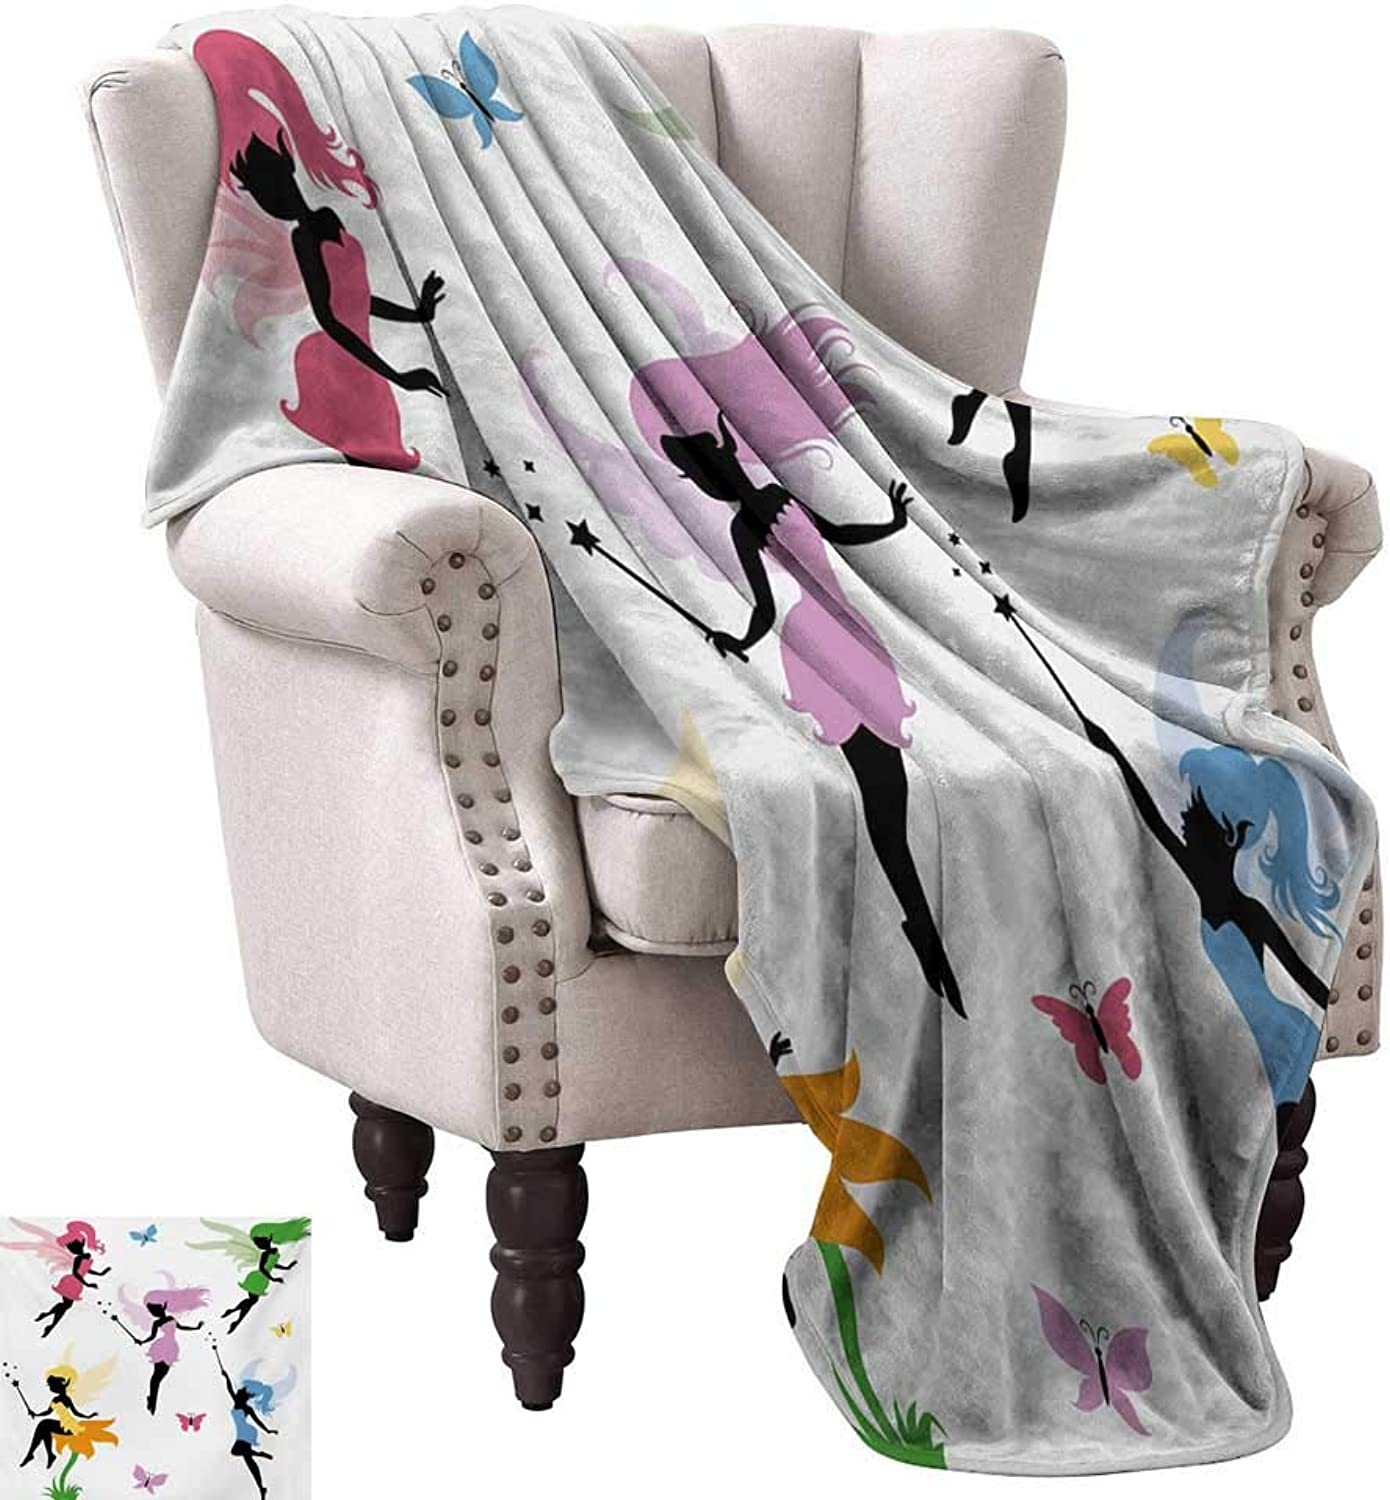 Anyangeight Throw Blanket,Cute Pixie Spirit Elf Fairies Flying with Butterflies Girls Princess Flowers Design 60 x50 ,Super Soft and Comfortable,Suitable for Sofas,Chairs,beds